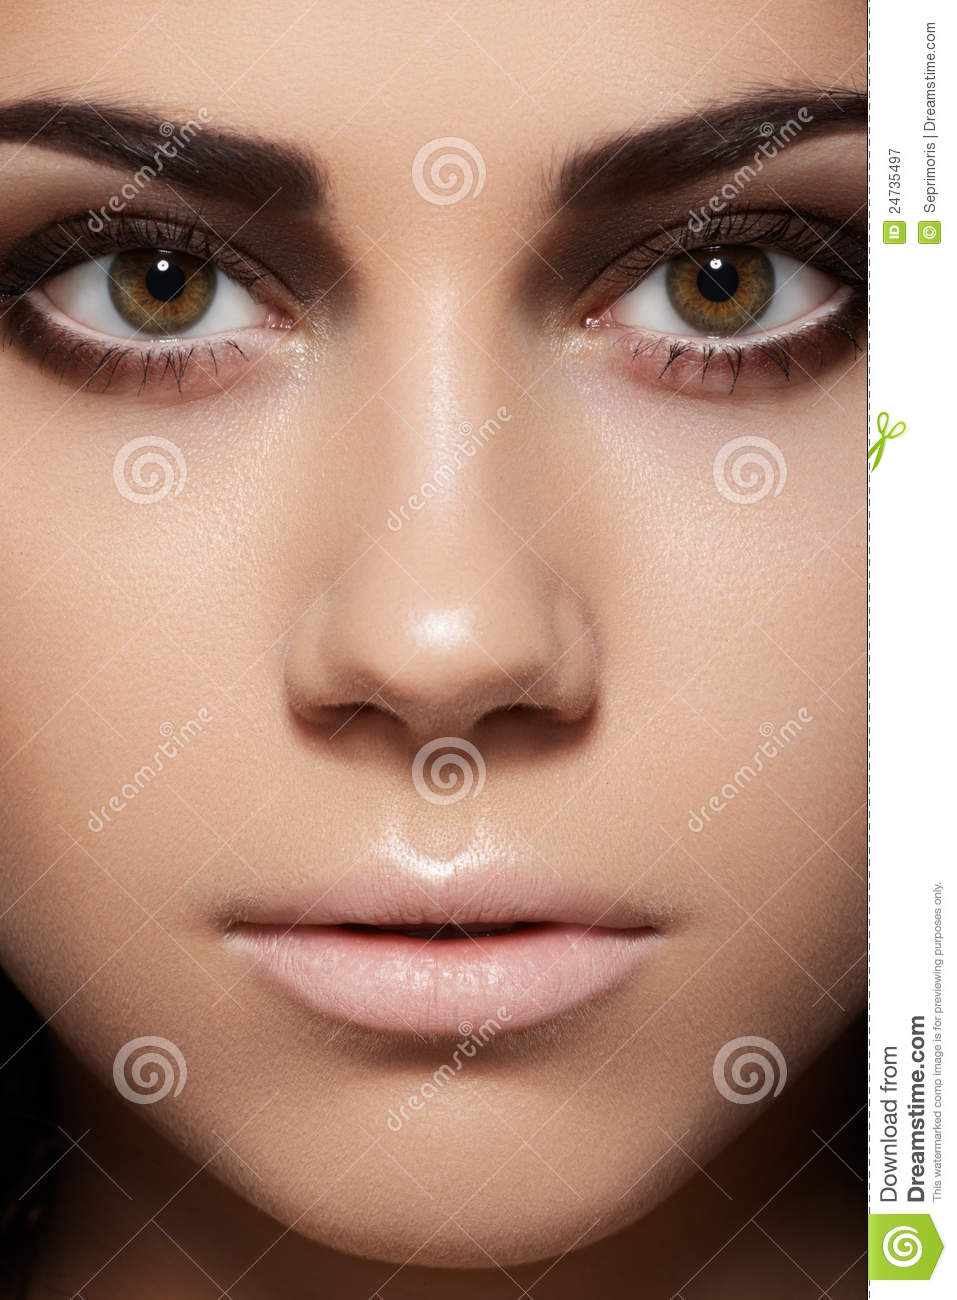 Close Up Of Model Face With Eye Makeup Clean Skin Stock Image